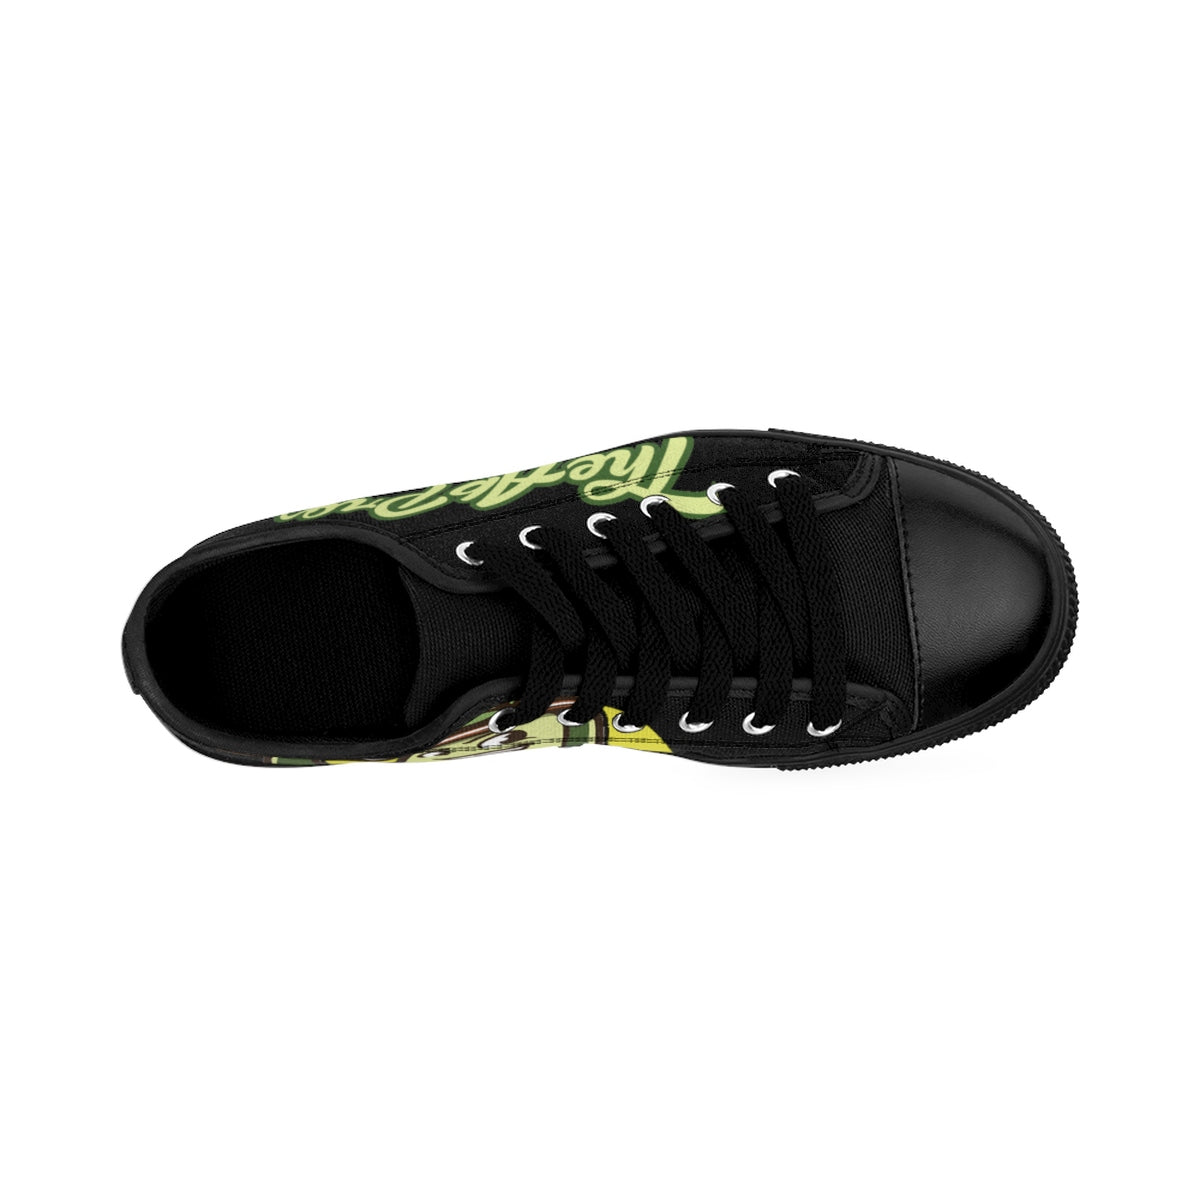 "Avocado Women's Sneakers - Fit Family Apparel by Erick ""The Ab Pro"""